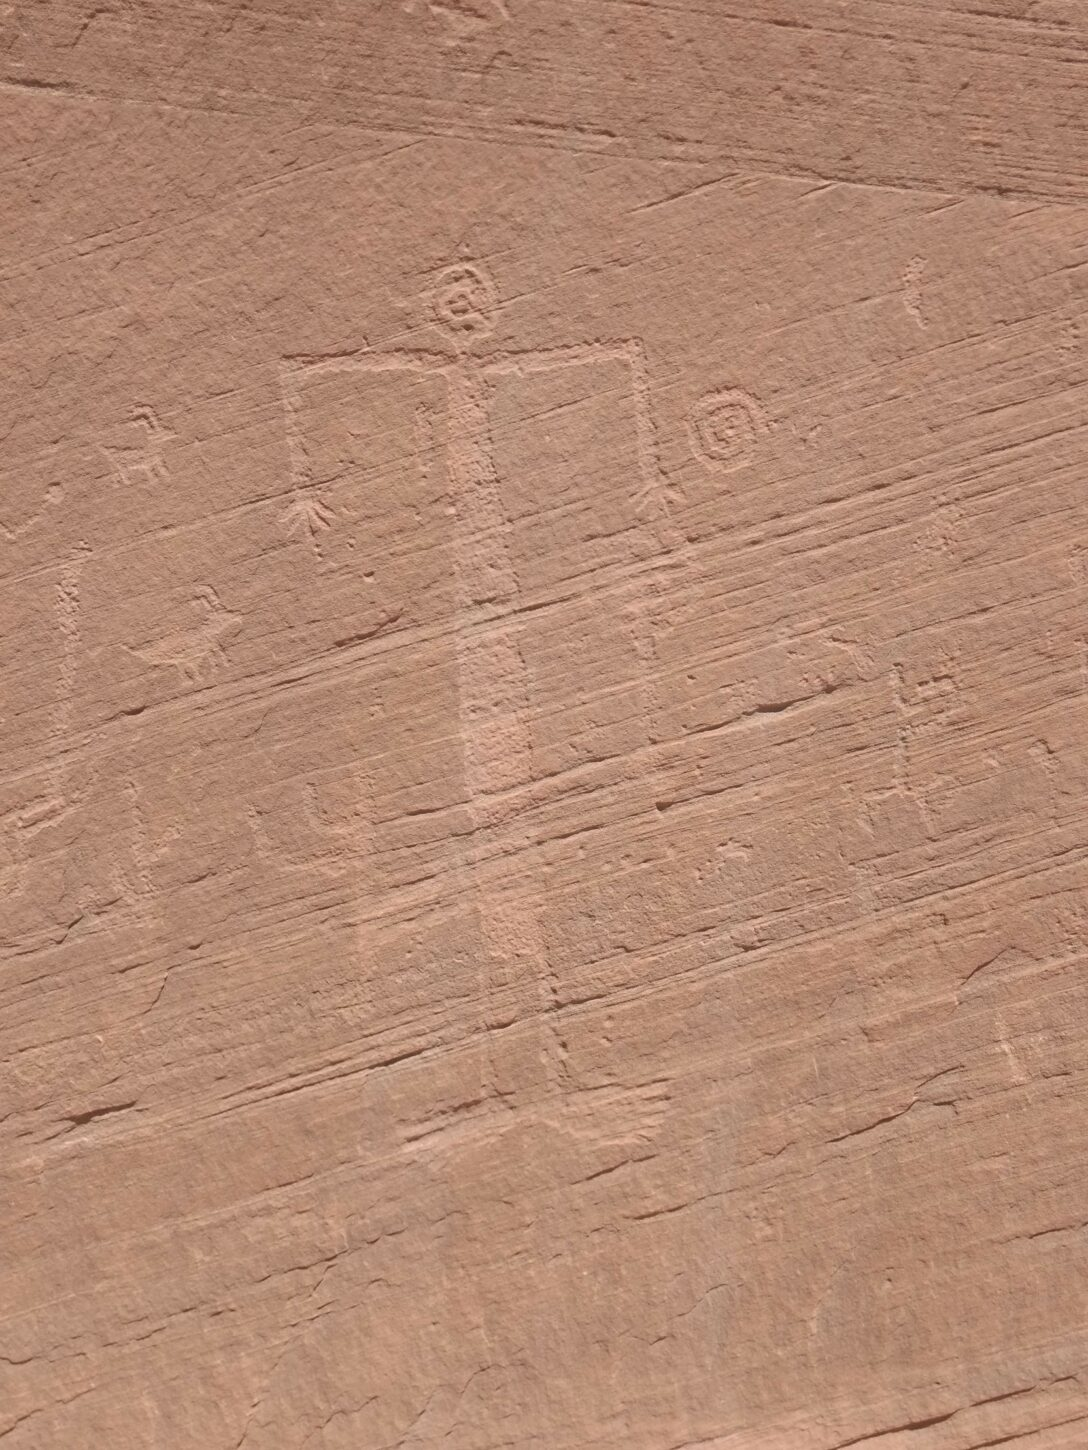 Petroglyph panel near White Pocket